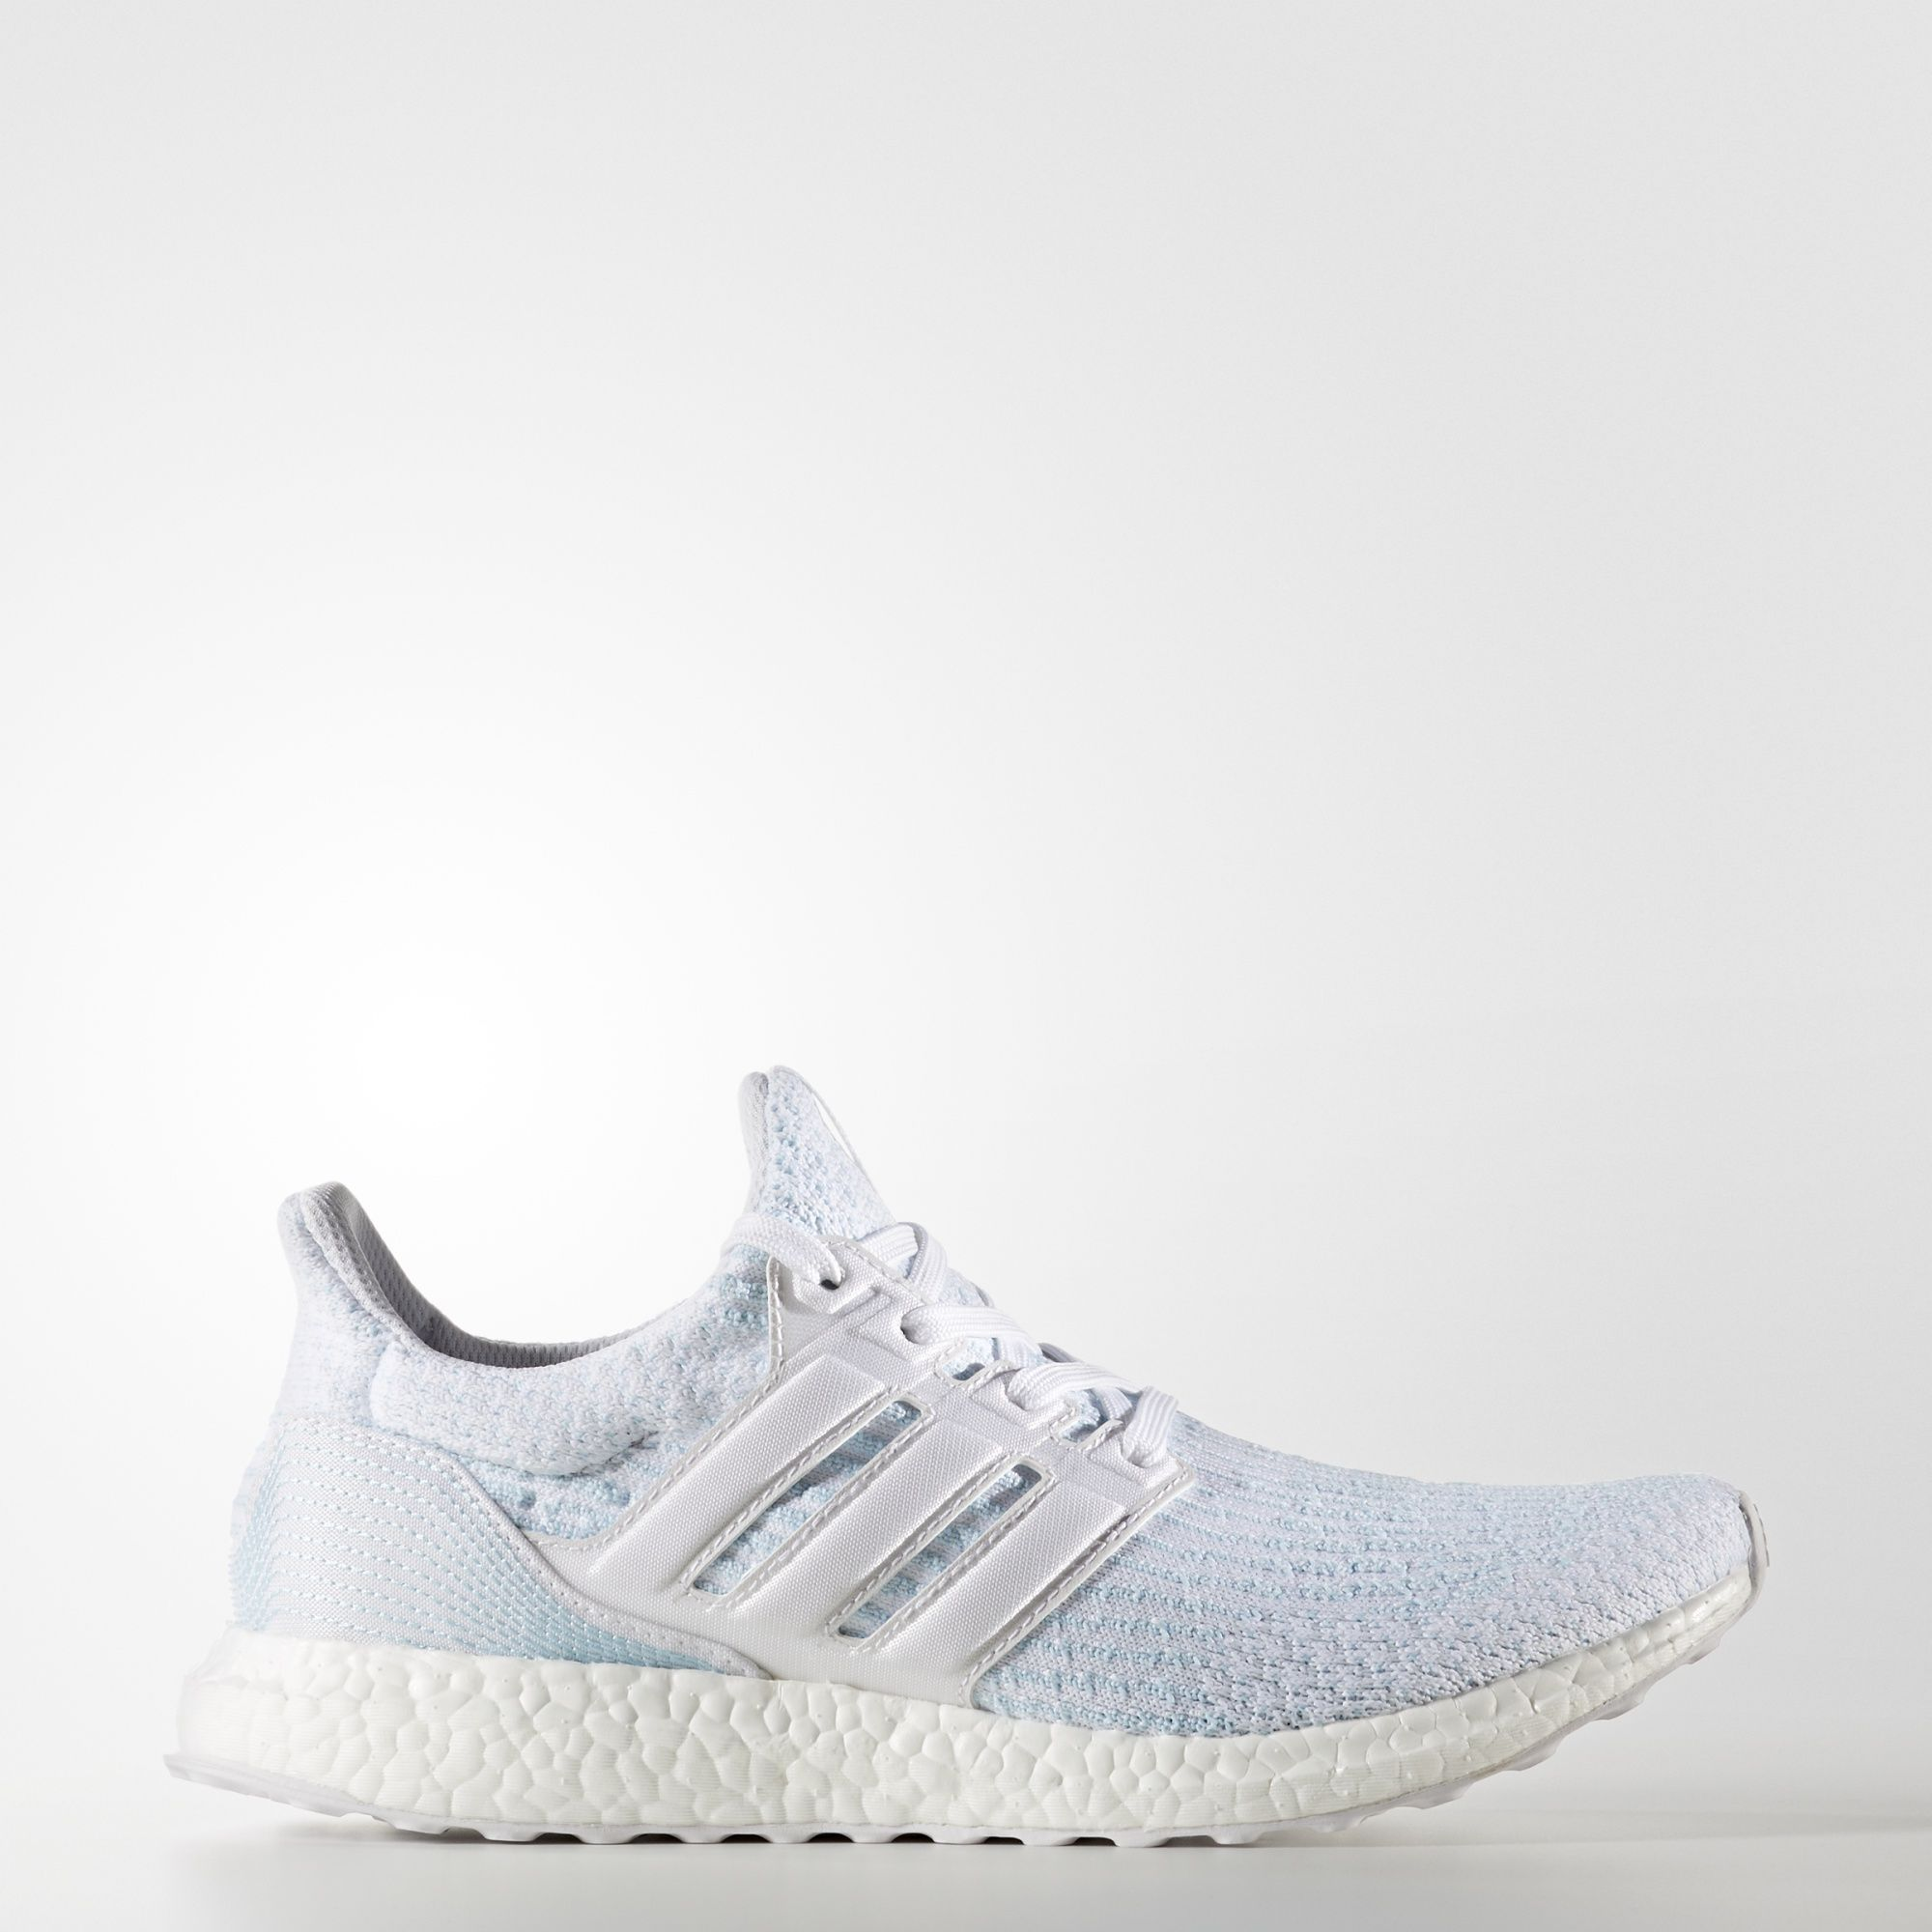 71b36c3e425 Ultraboost Parley Shoes Running White 9.5 Mens